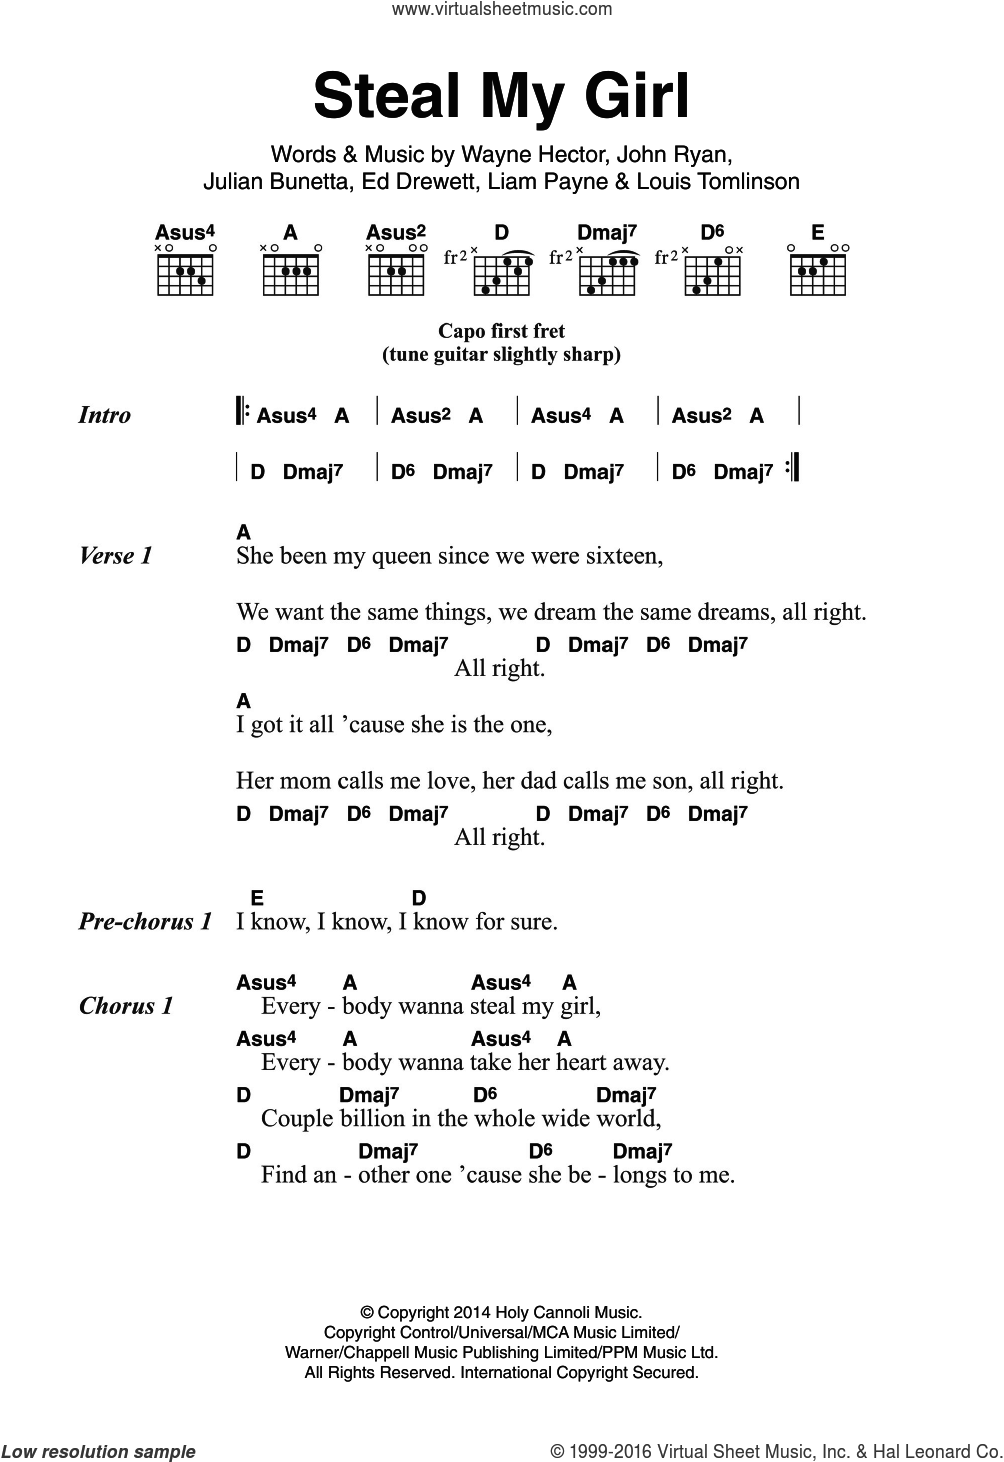 Direction   Steal My Girl sheet music for guitar chords [PDF]